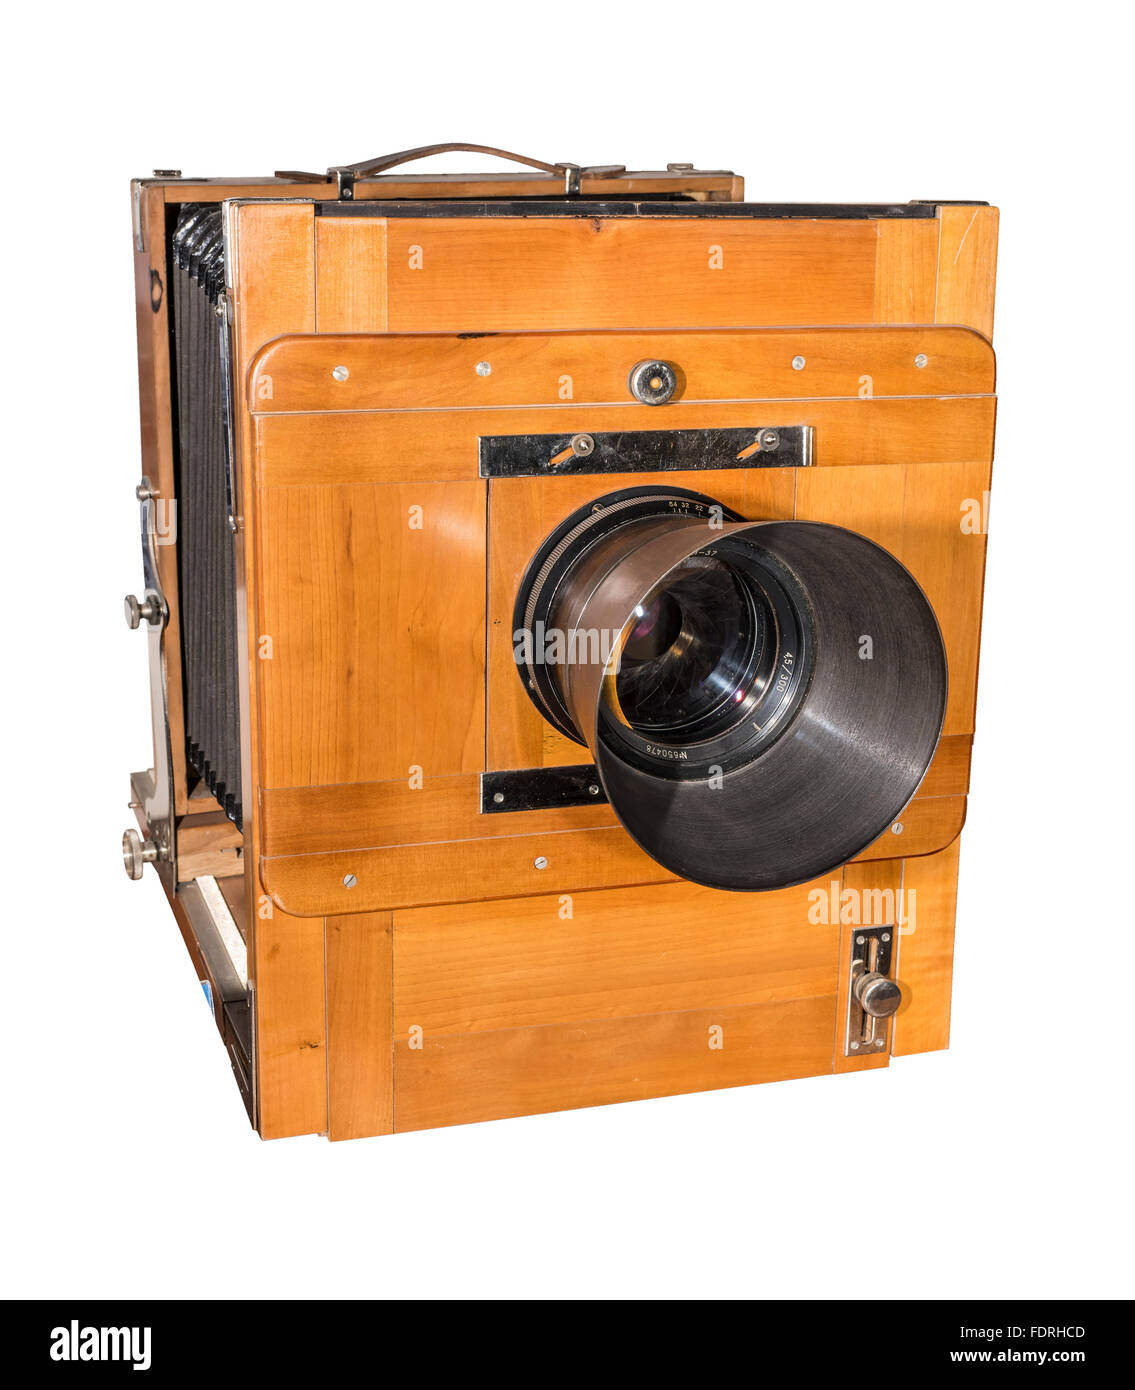 Photo camera an old, wooden, frame size 18 x 24 cm. Production year ...